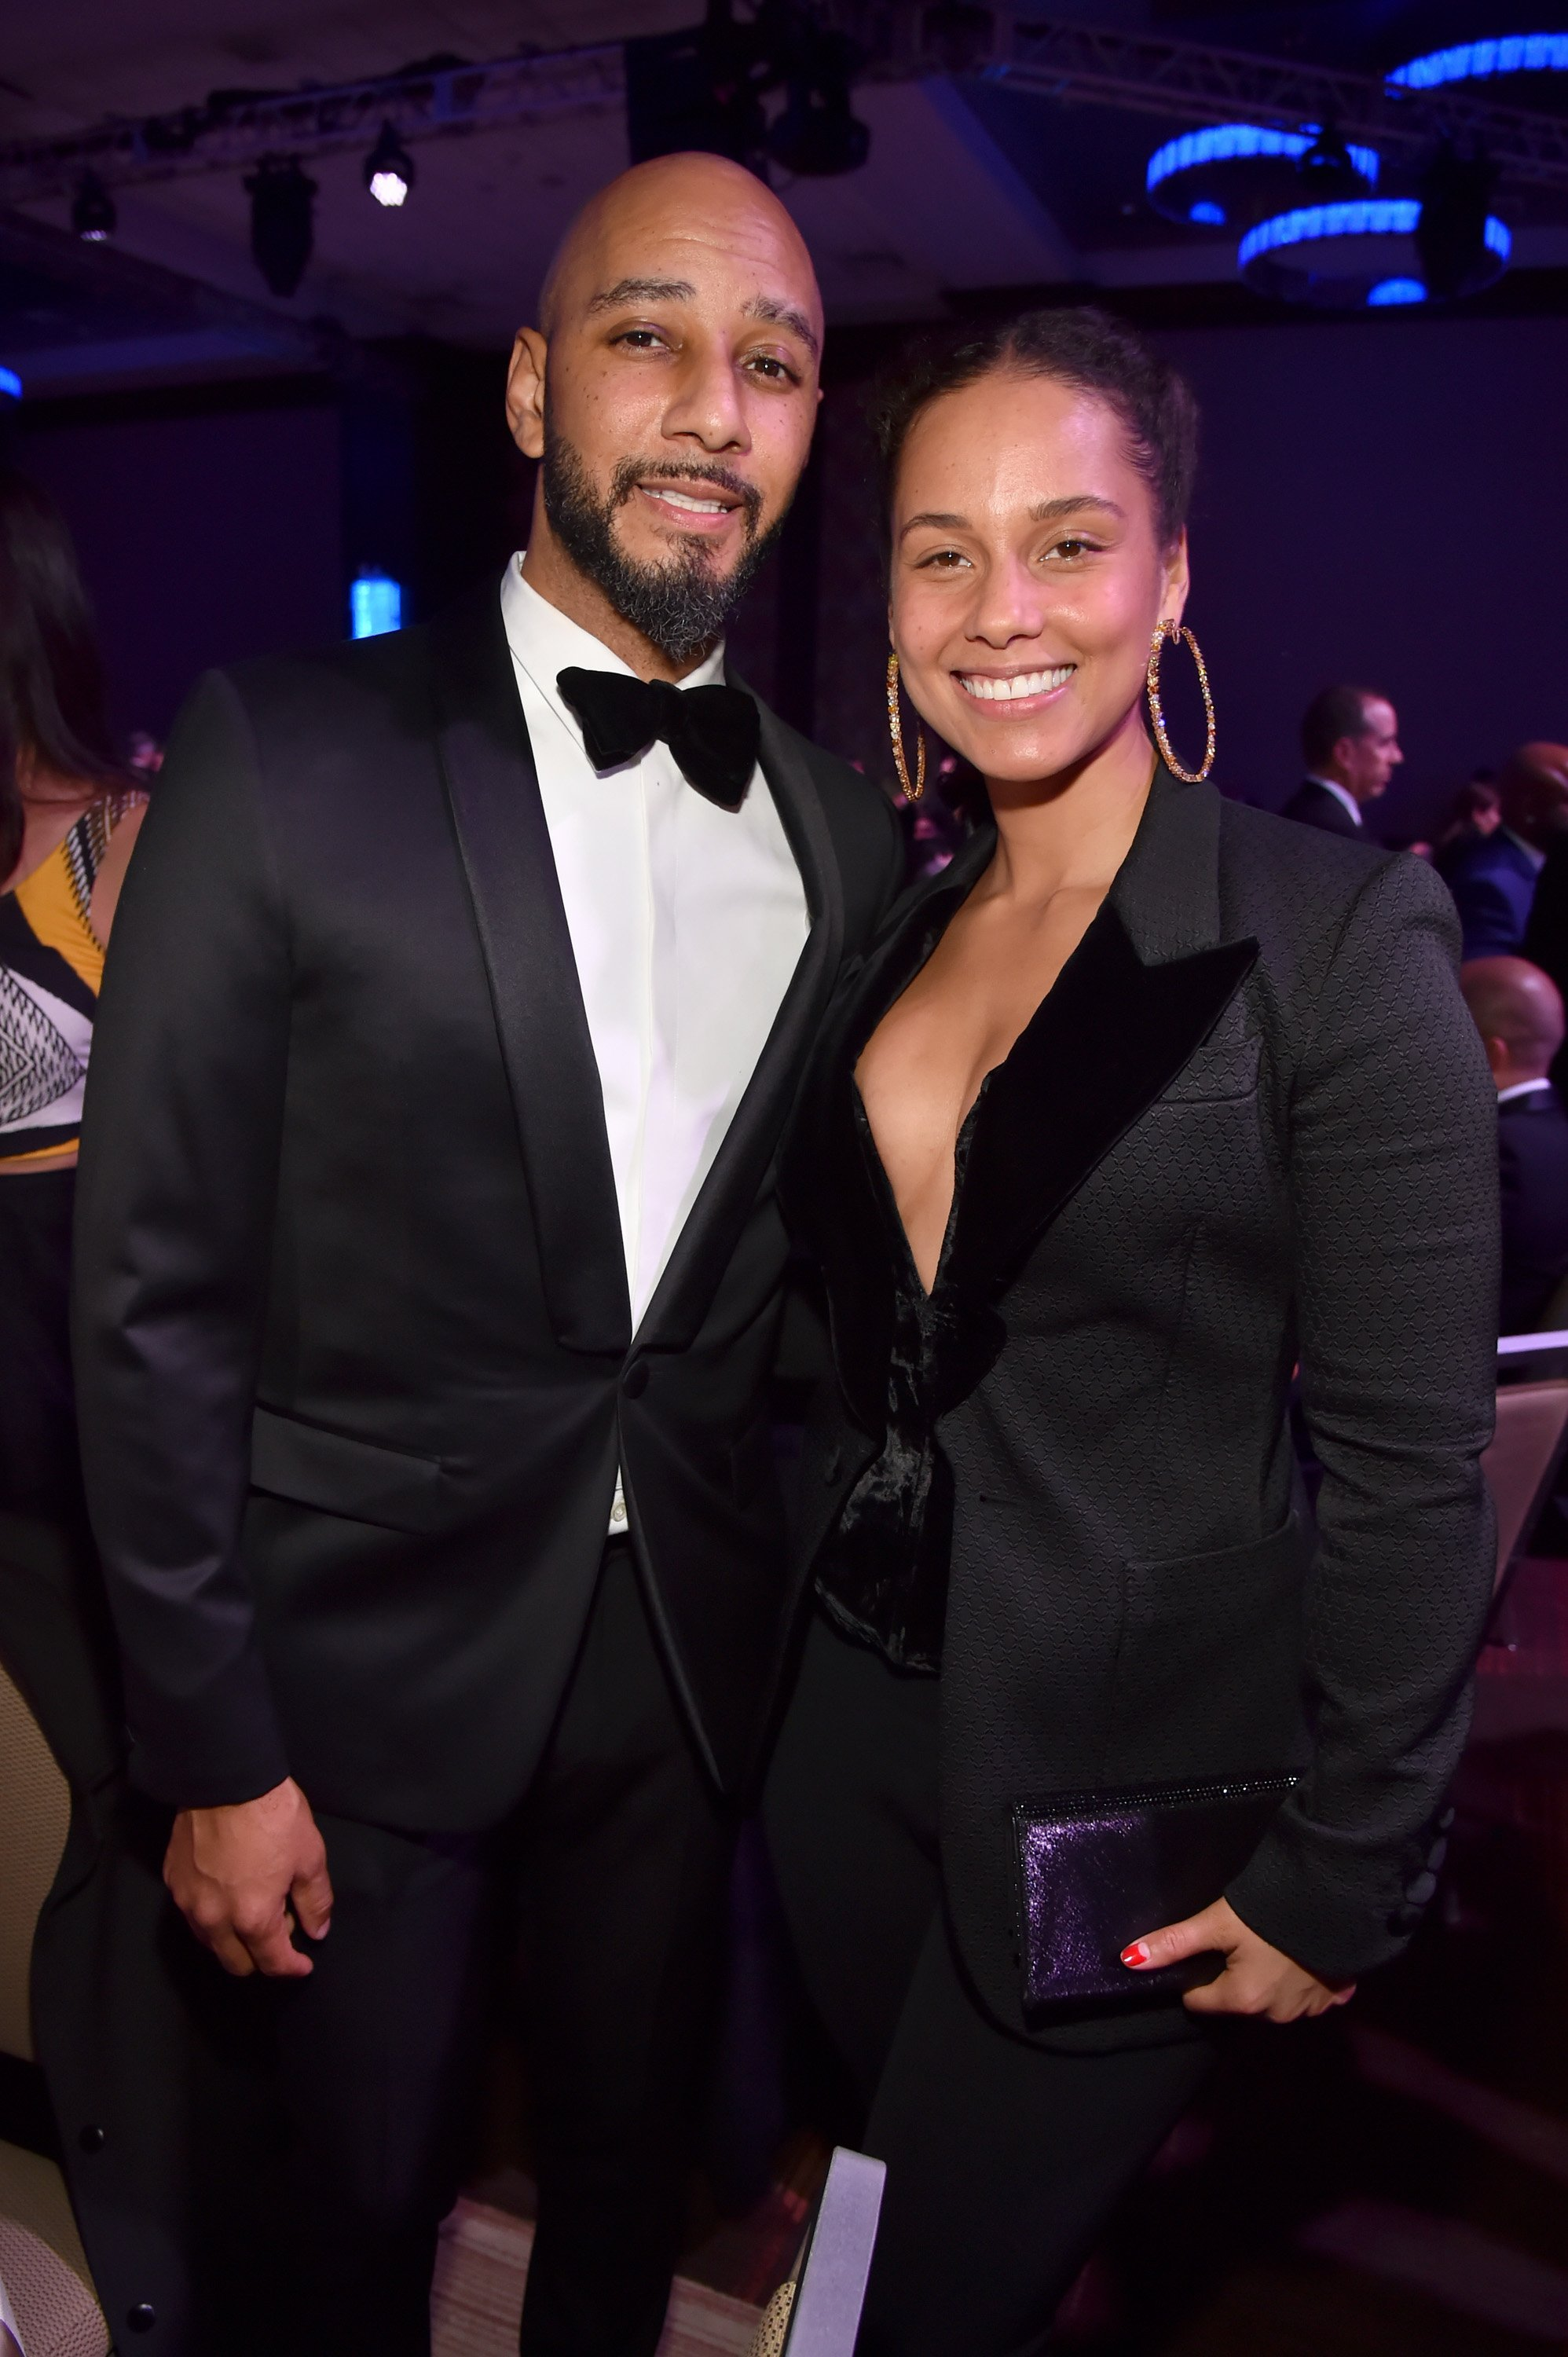 Husband and wife musical artists Swizz Beatz and Alicia Keys at a Pre-Grammy gala in January 2018. | Photo: Getty Images